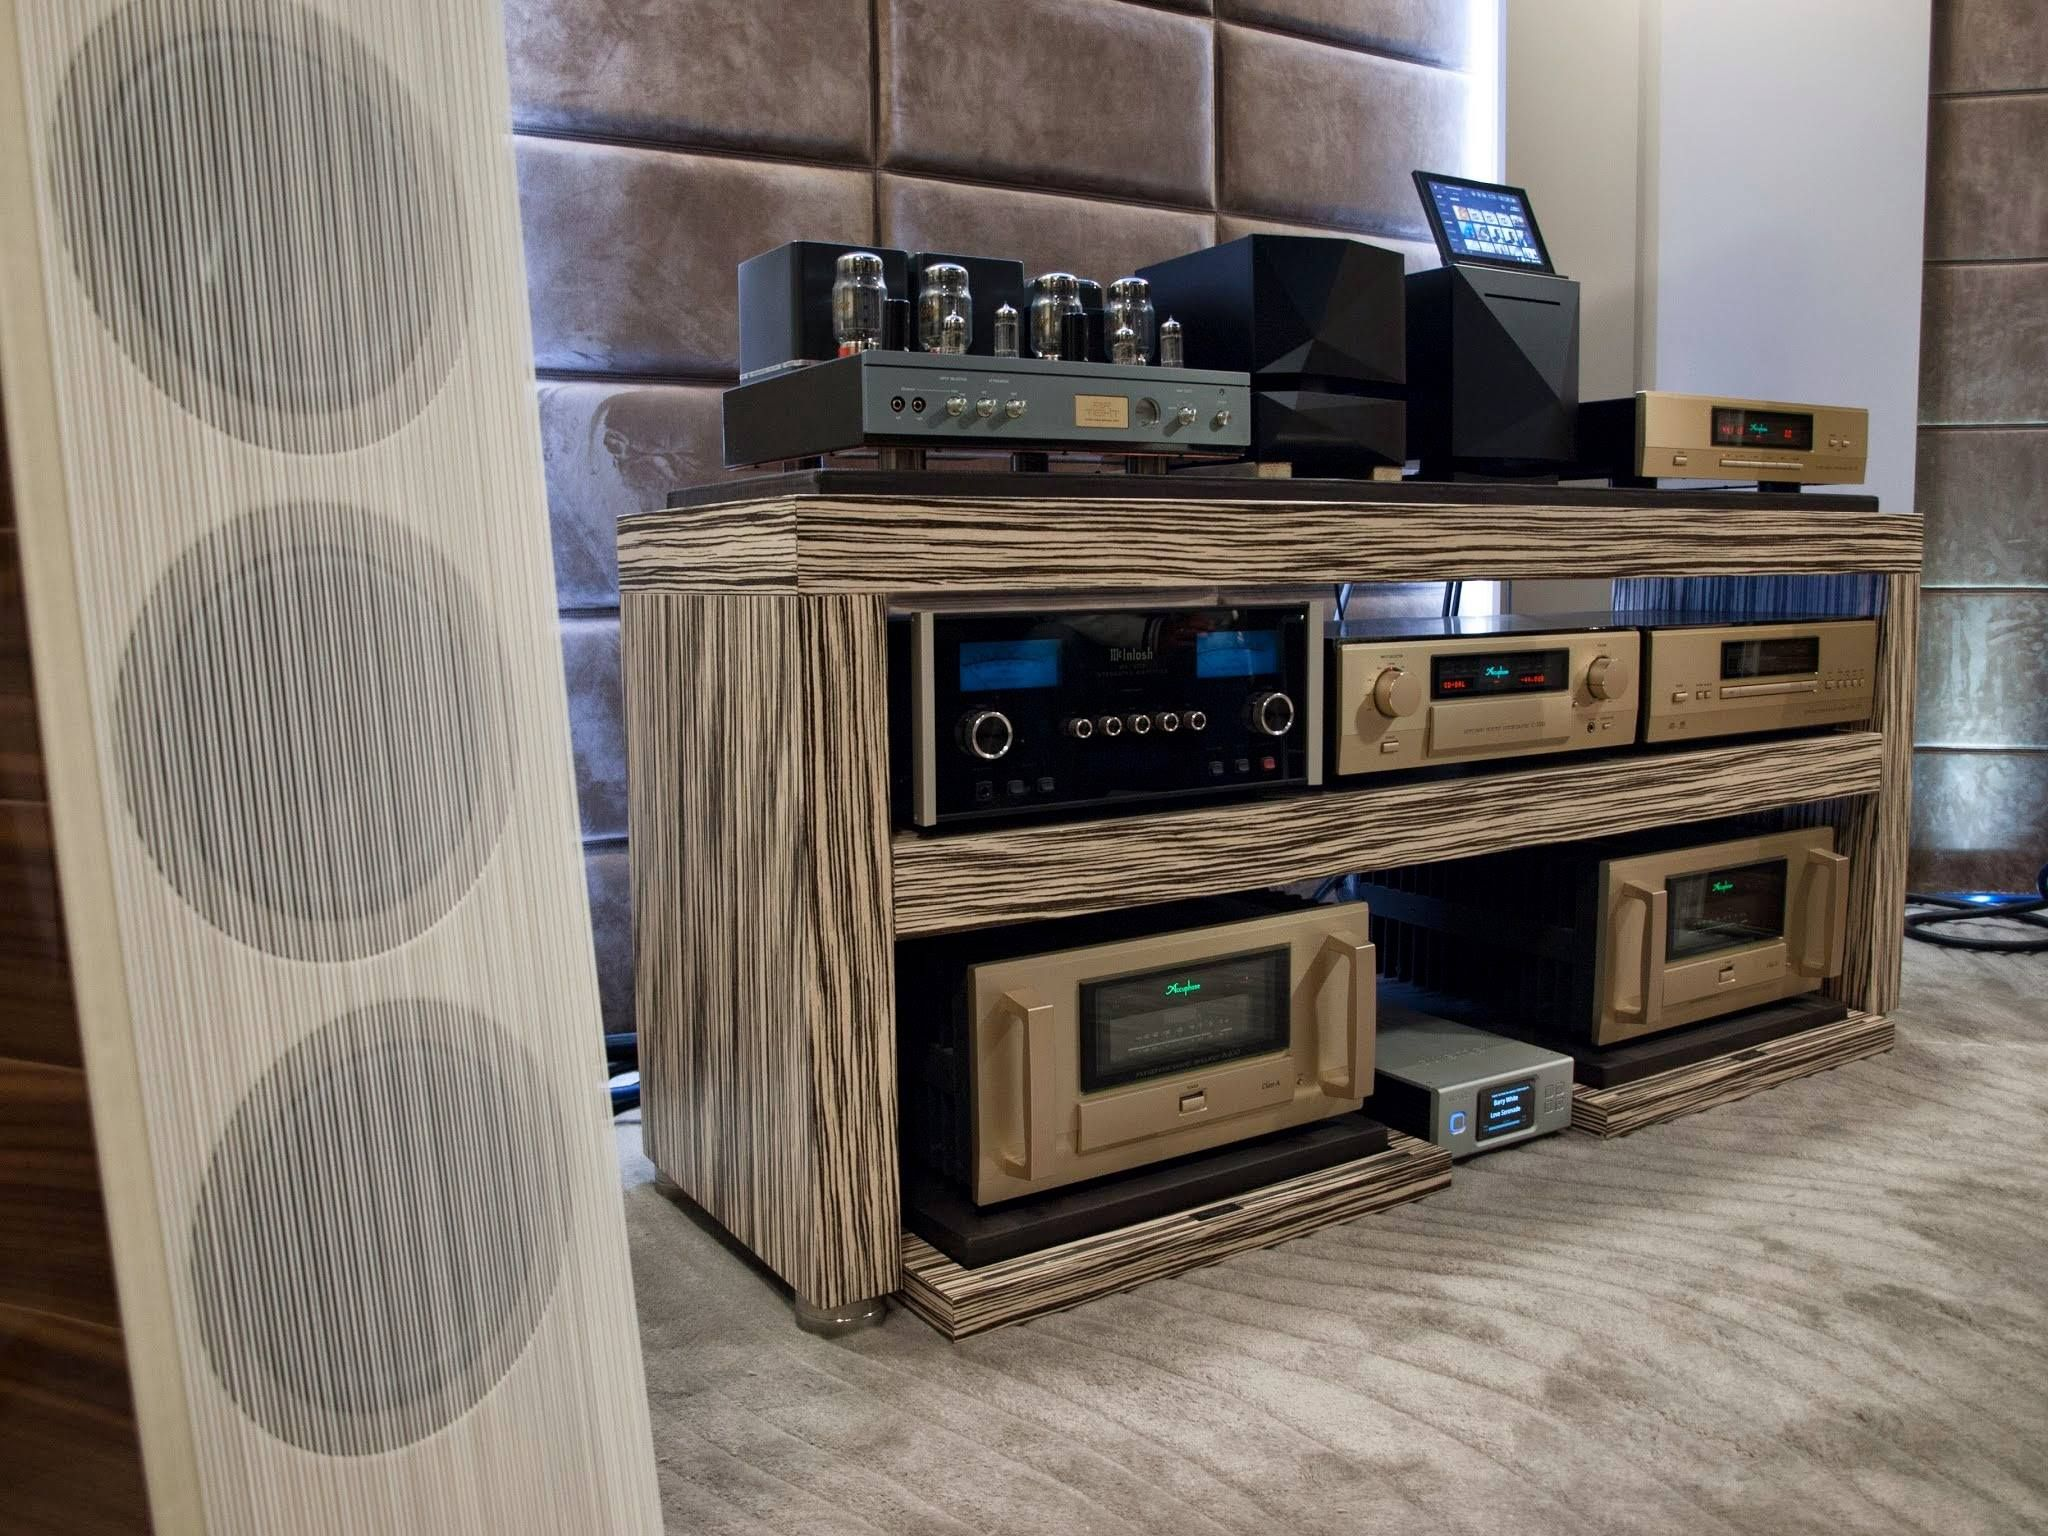 Awesome BASSOCONTINUO audio rack with ACCUPHASE McINTOSH LABS and